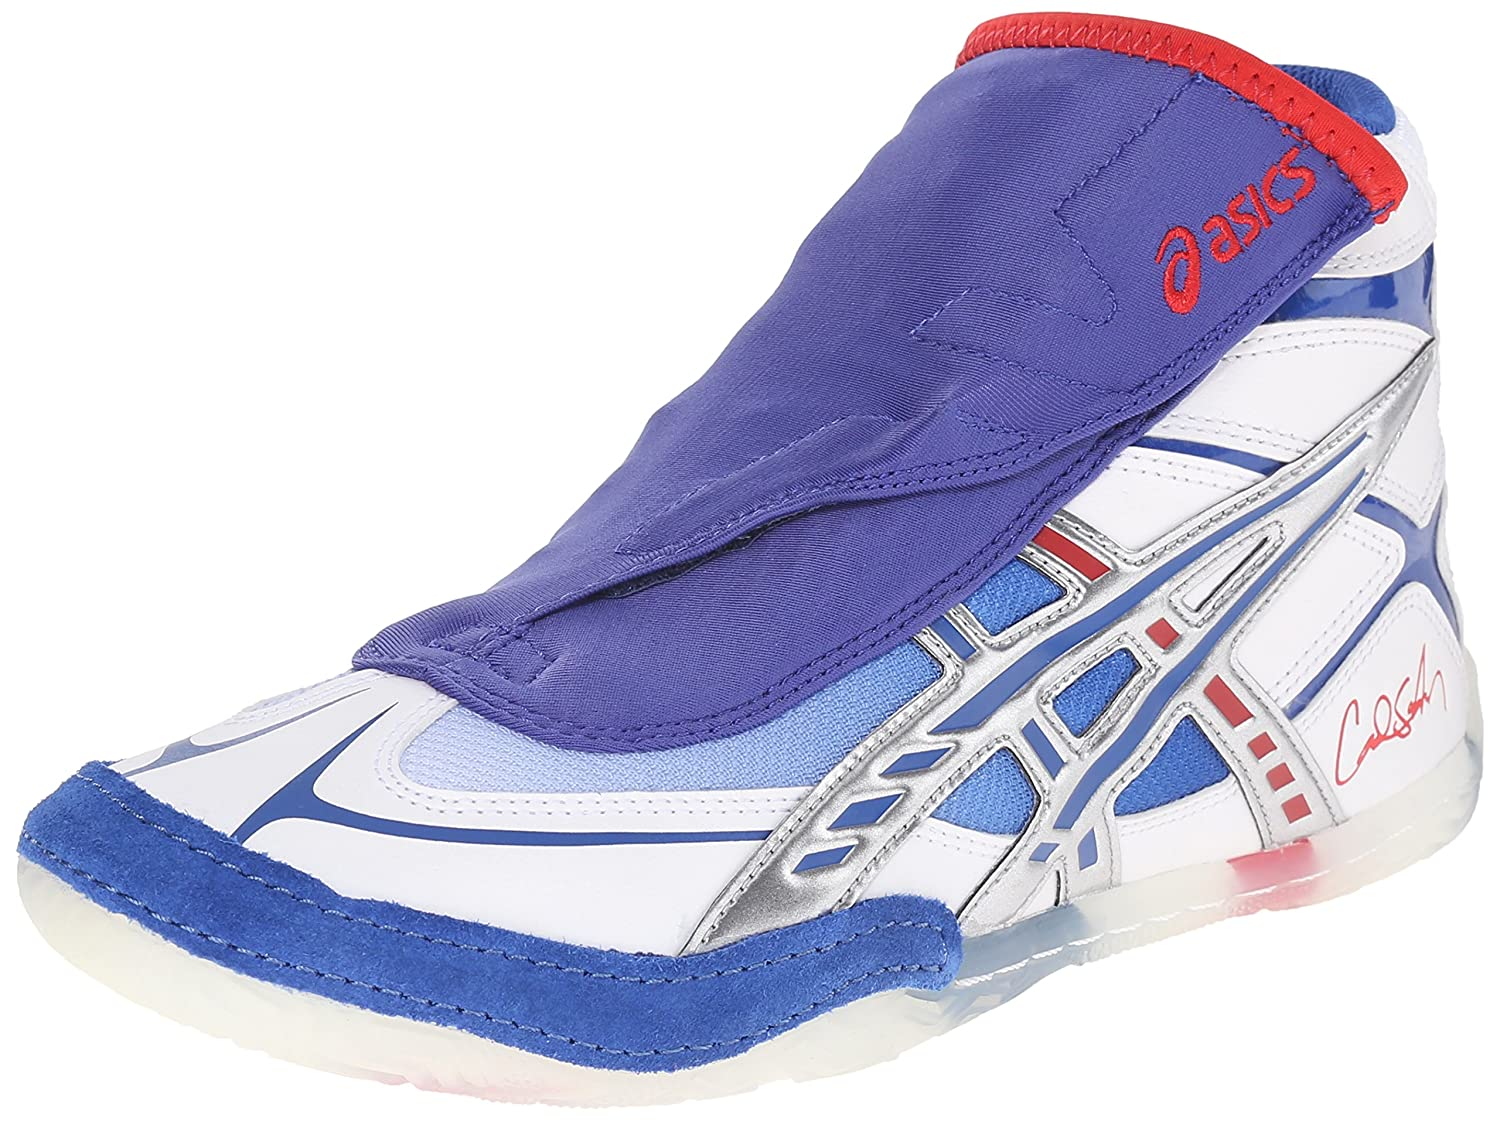 ASICS Men's Cael Wrestling Shoe ASICS America Corporation Cael-M